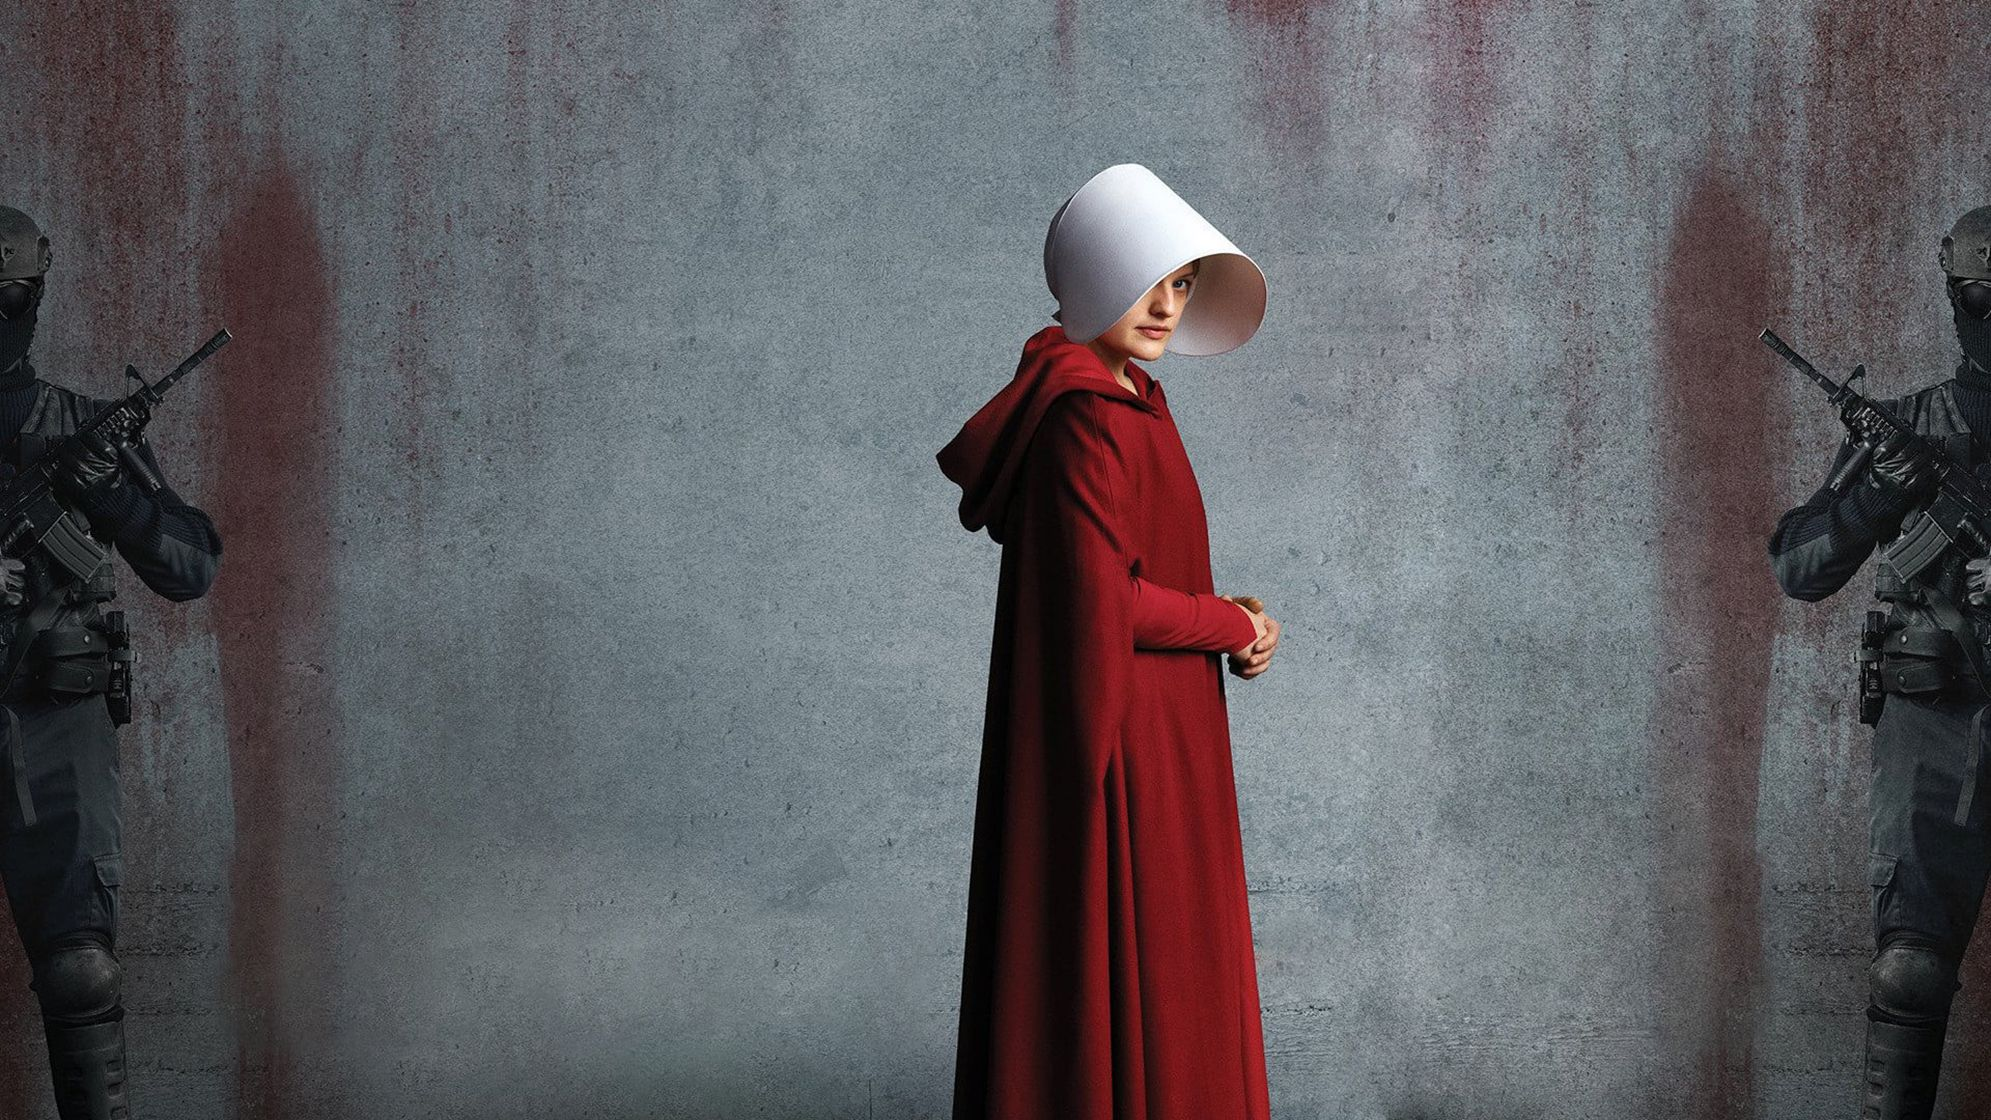 Handmaid's Tale records most losses at Emmys 2021